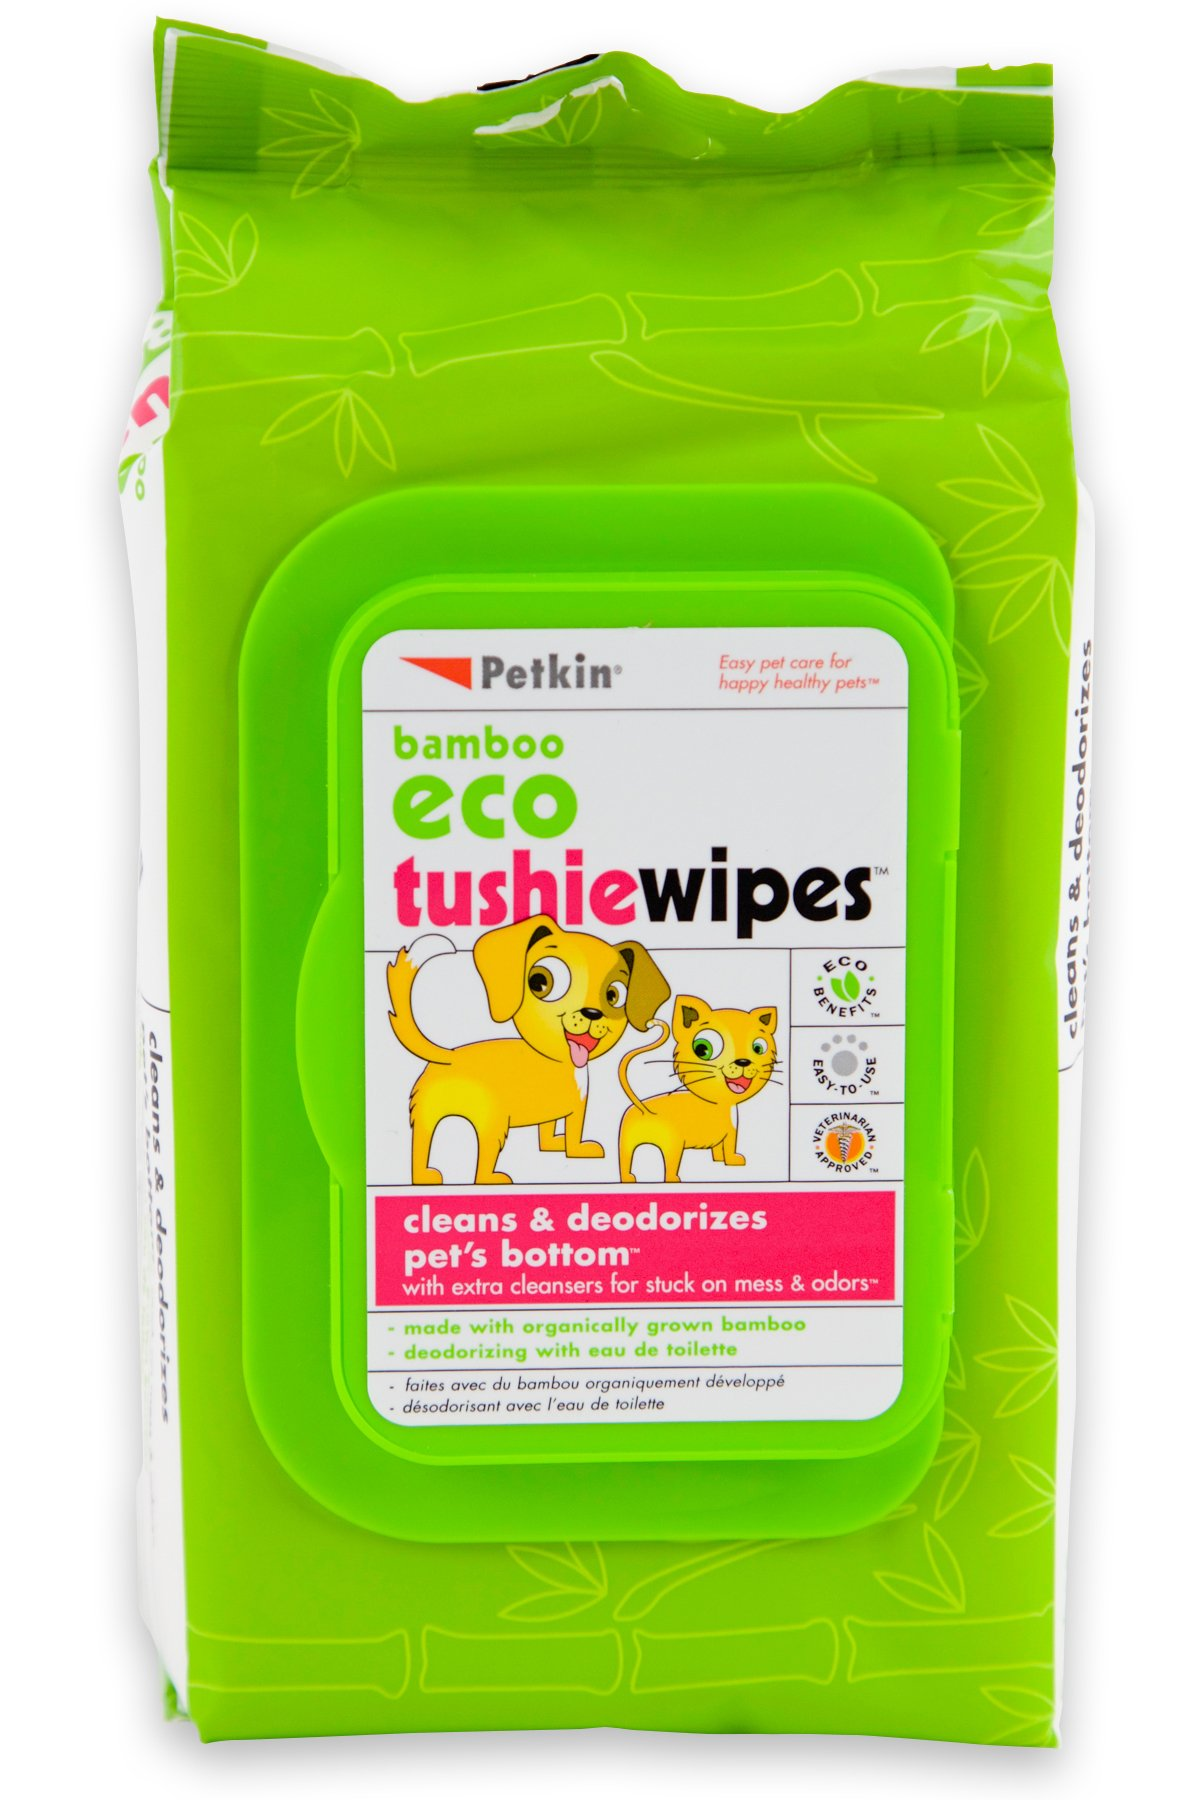 Petkin Bamboo Eco Tushiewipes, 80 Count